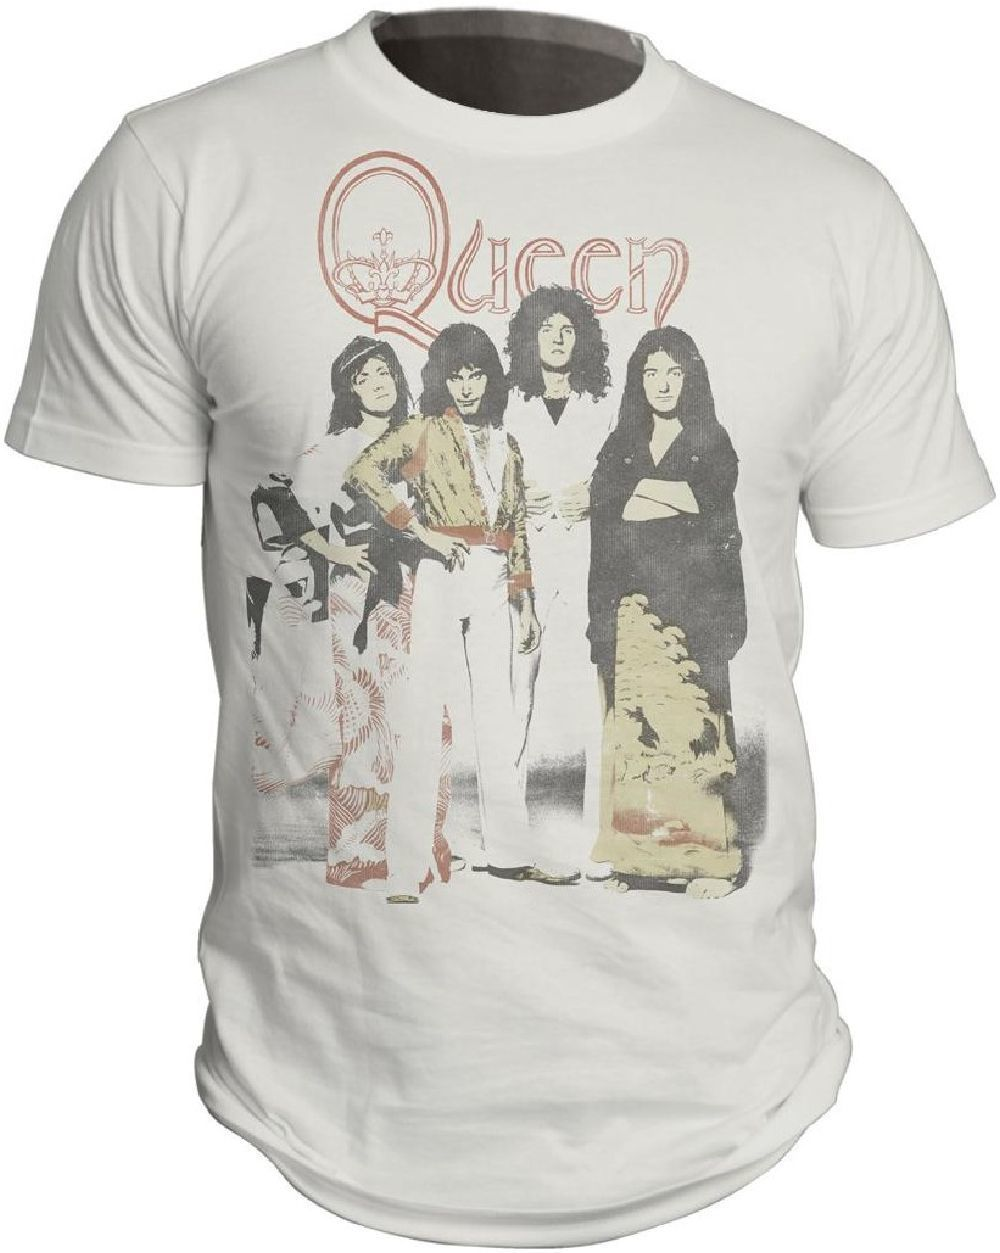 50884df1bdc Our vintage Queen t-shirt spotlights a classic photograph of the rock band.  Formed in 1970